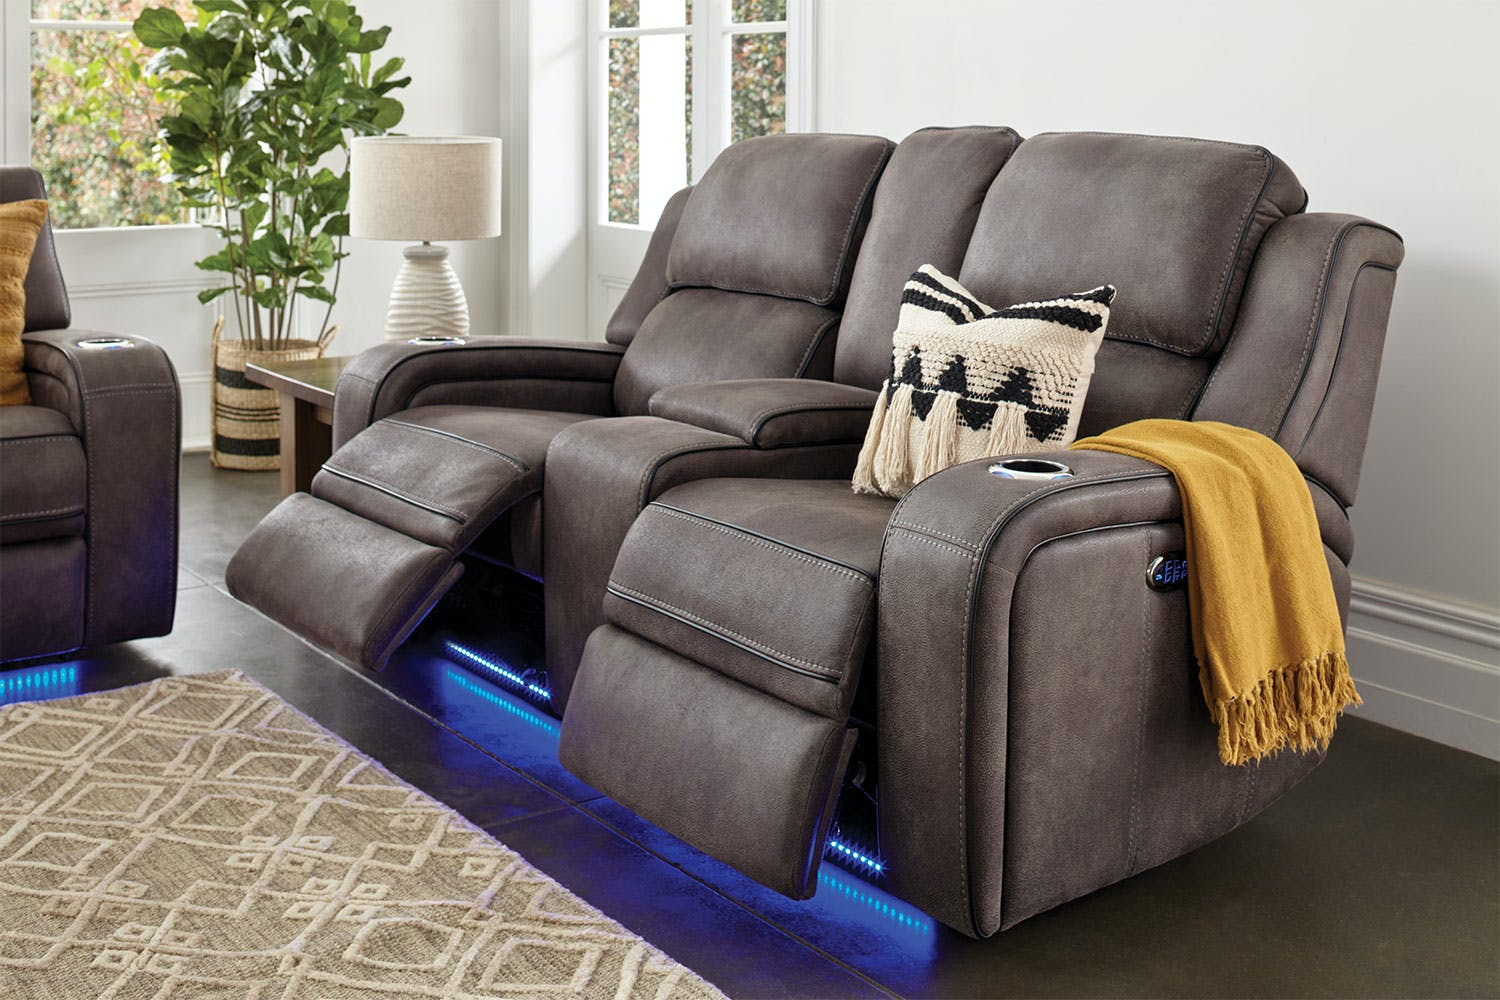 Swell Bradford 2 Seater Fabric Electric Recliner Sofa By Synargy Uwap Interior Chair Design Uwaporg